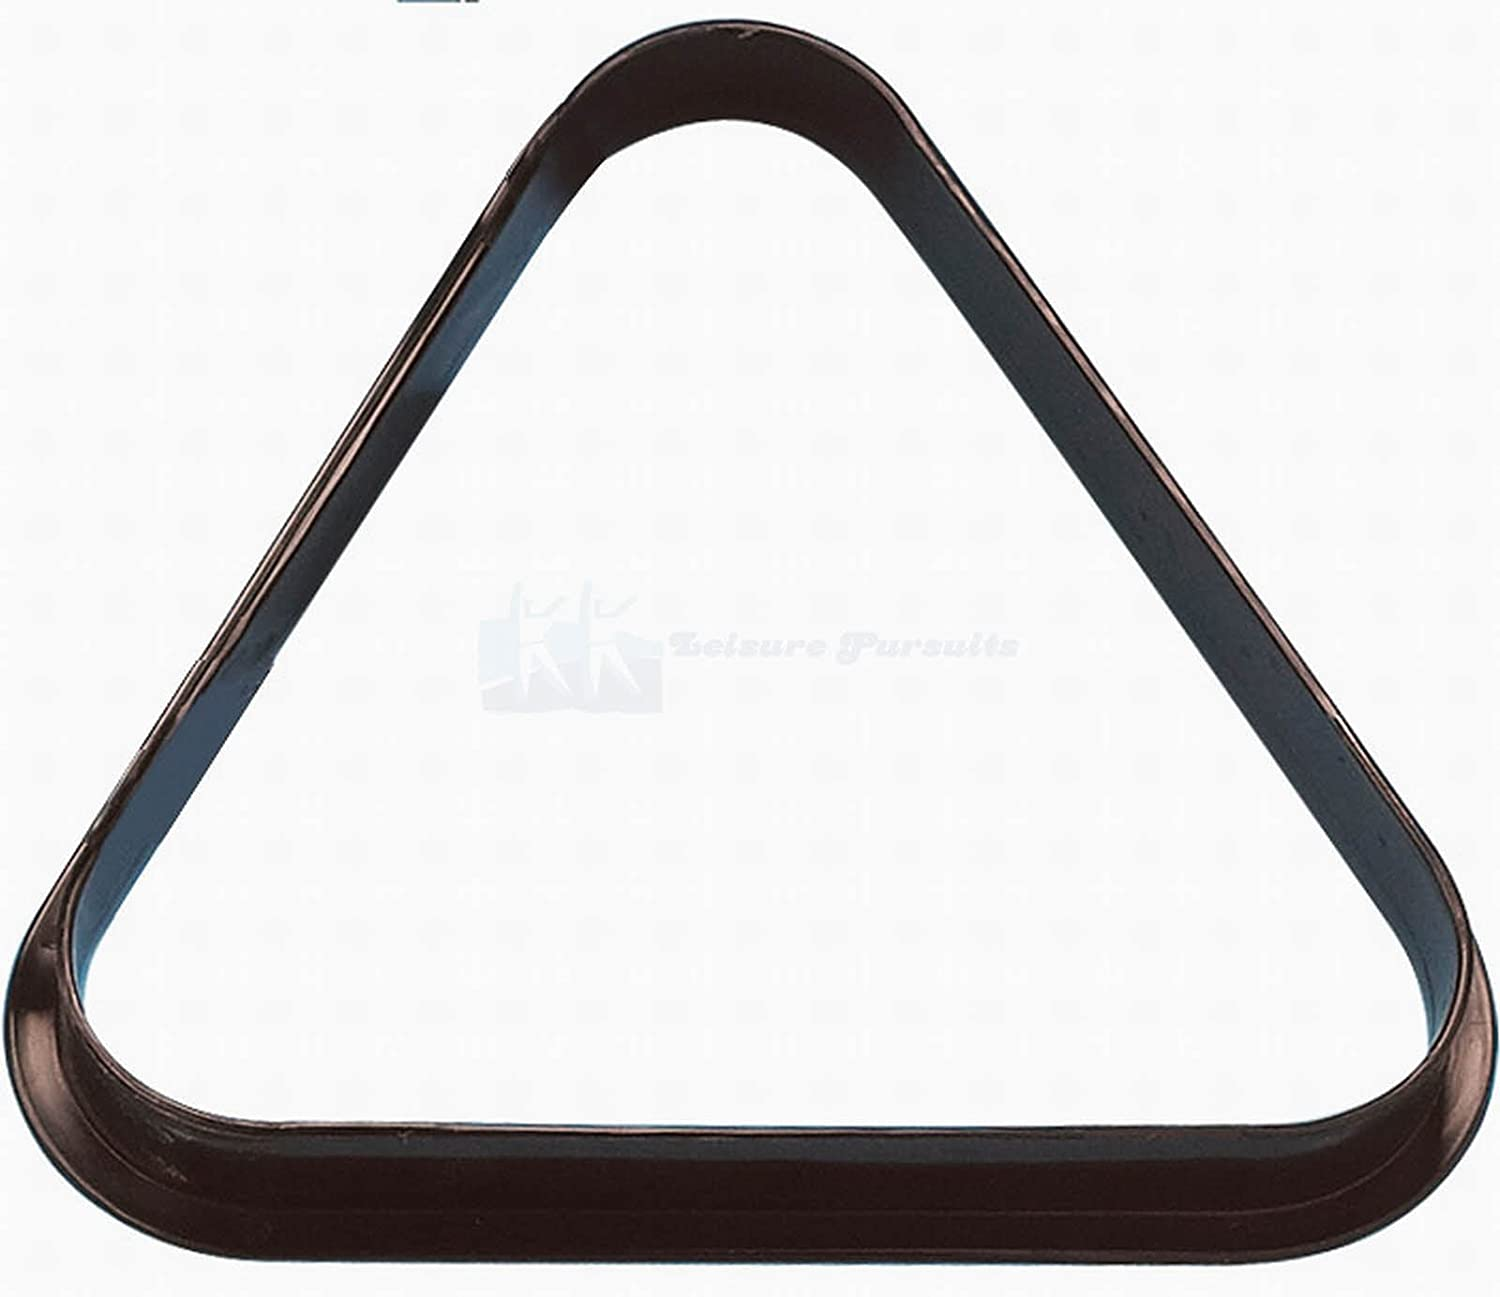 Snooker Table Triangle for 15 x 2-1/16